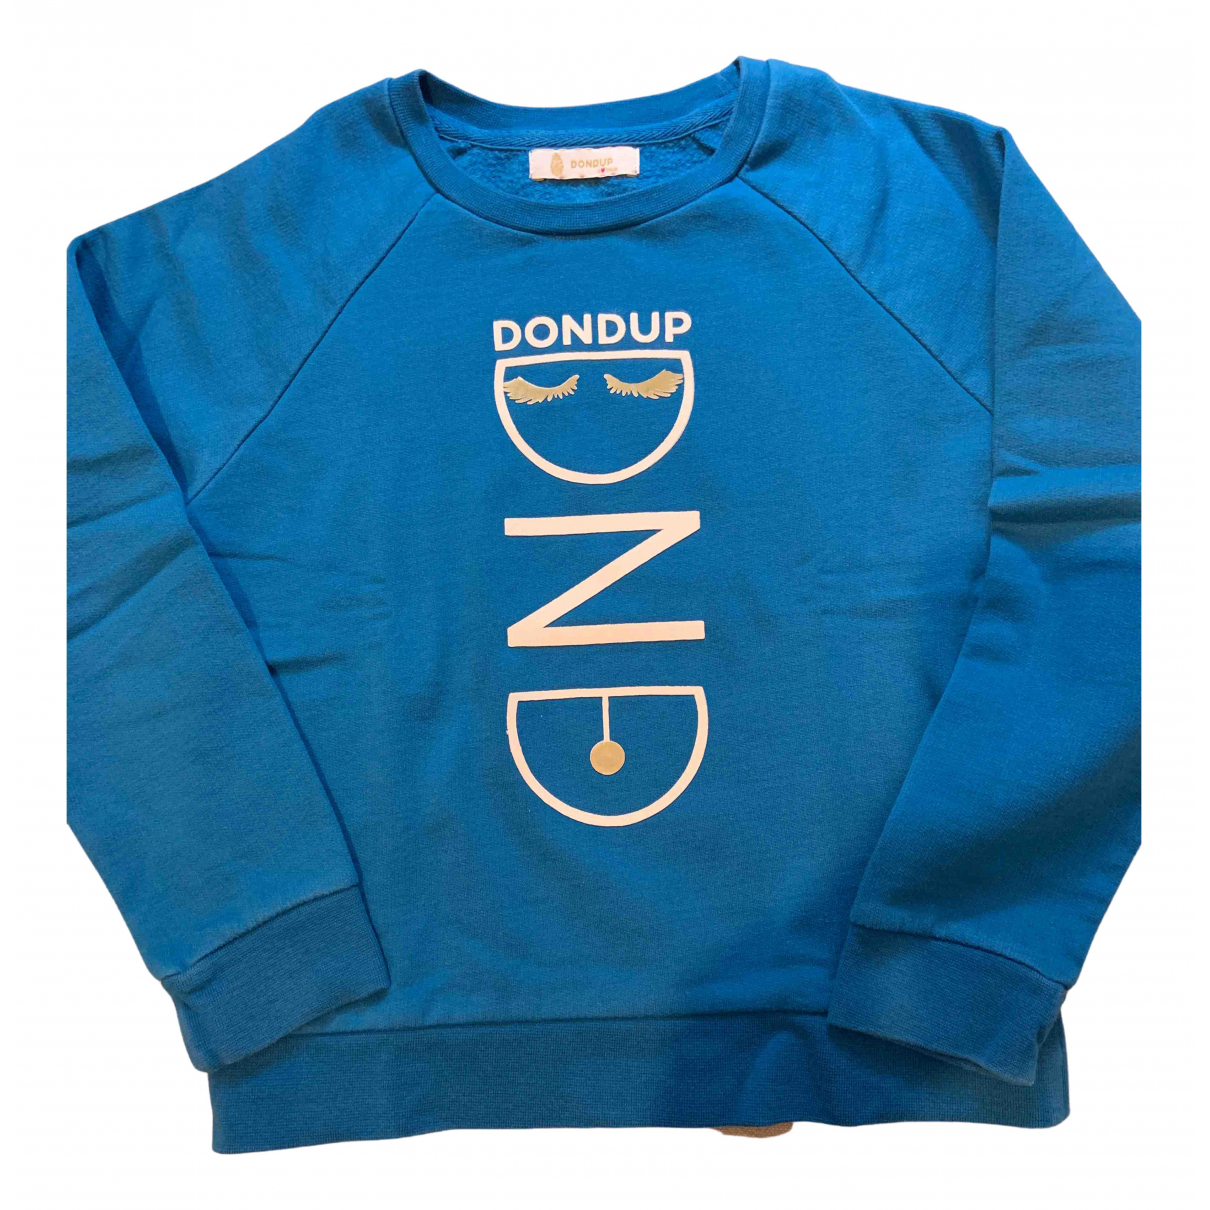 Dondup N Blue Cotton Knitwear for Kids 8 years - until 50 inches UK